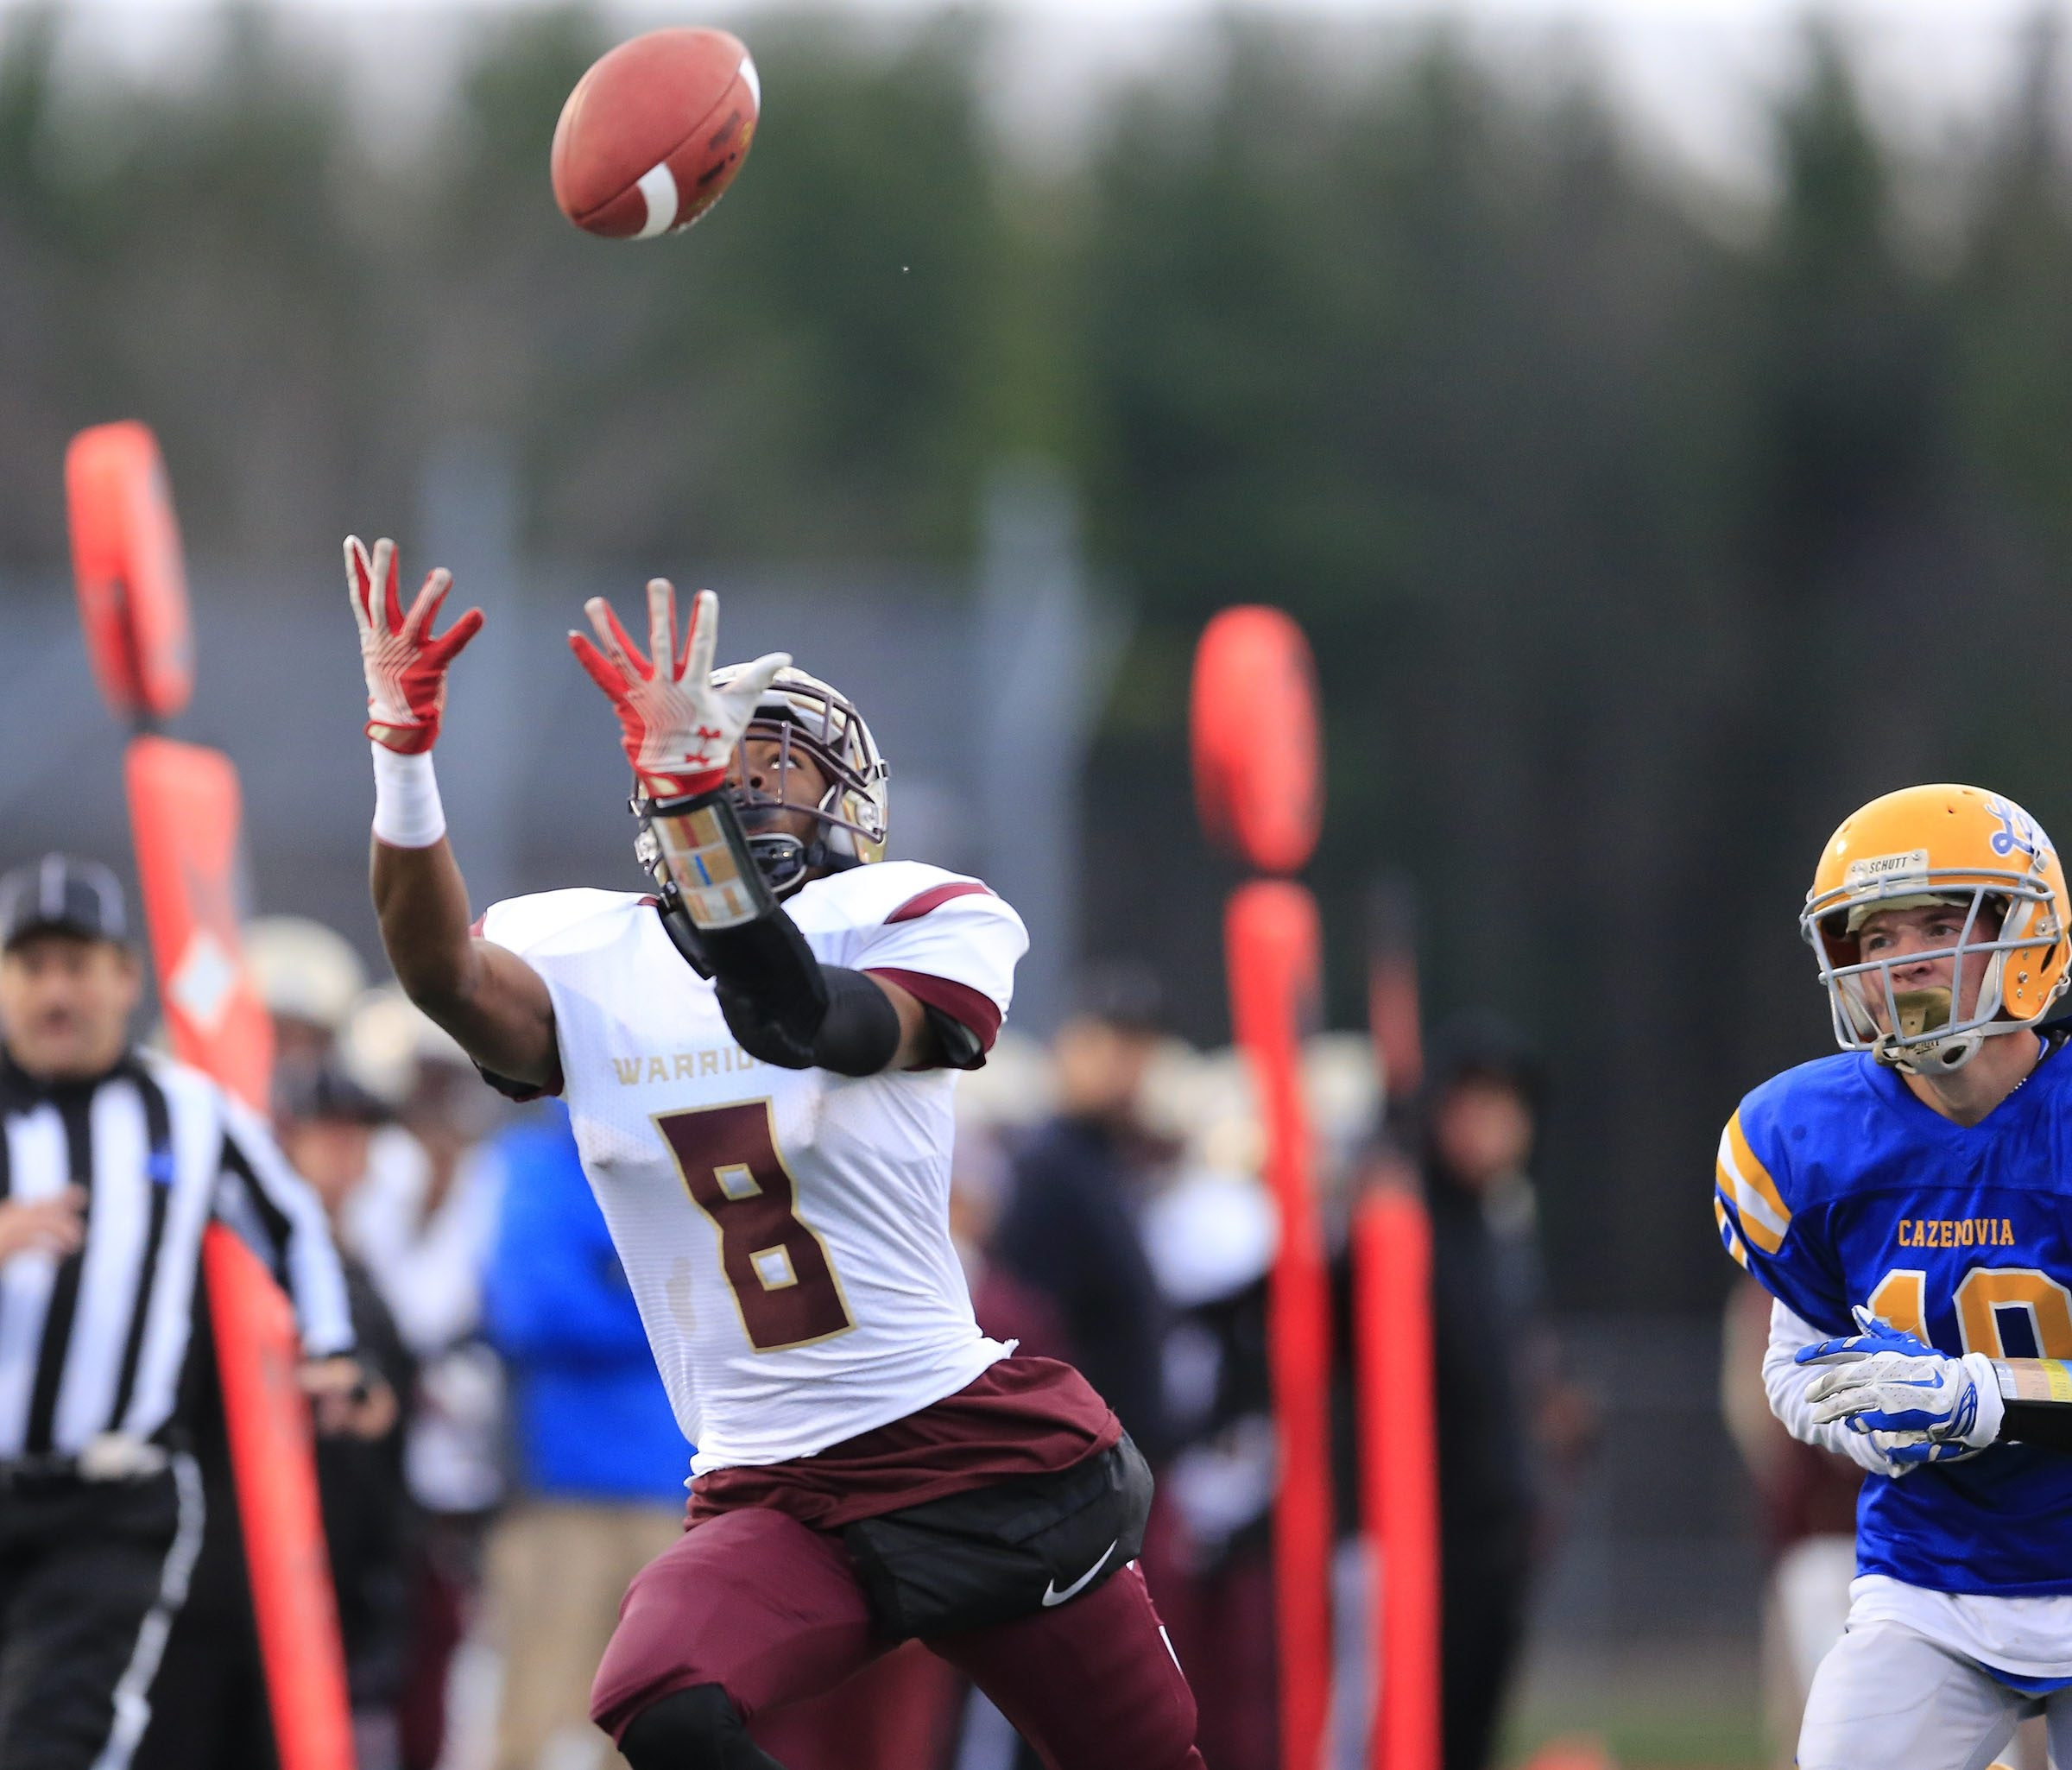 Cheektowaga's Zahir Annoor can't corral this Eric Bartnik pass during the Class B semifinals.